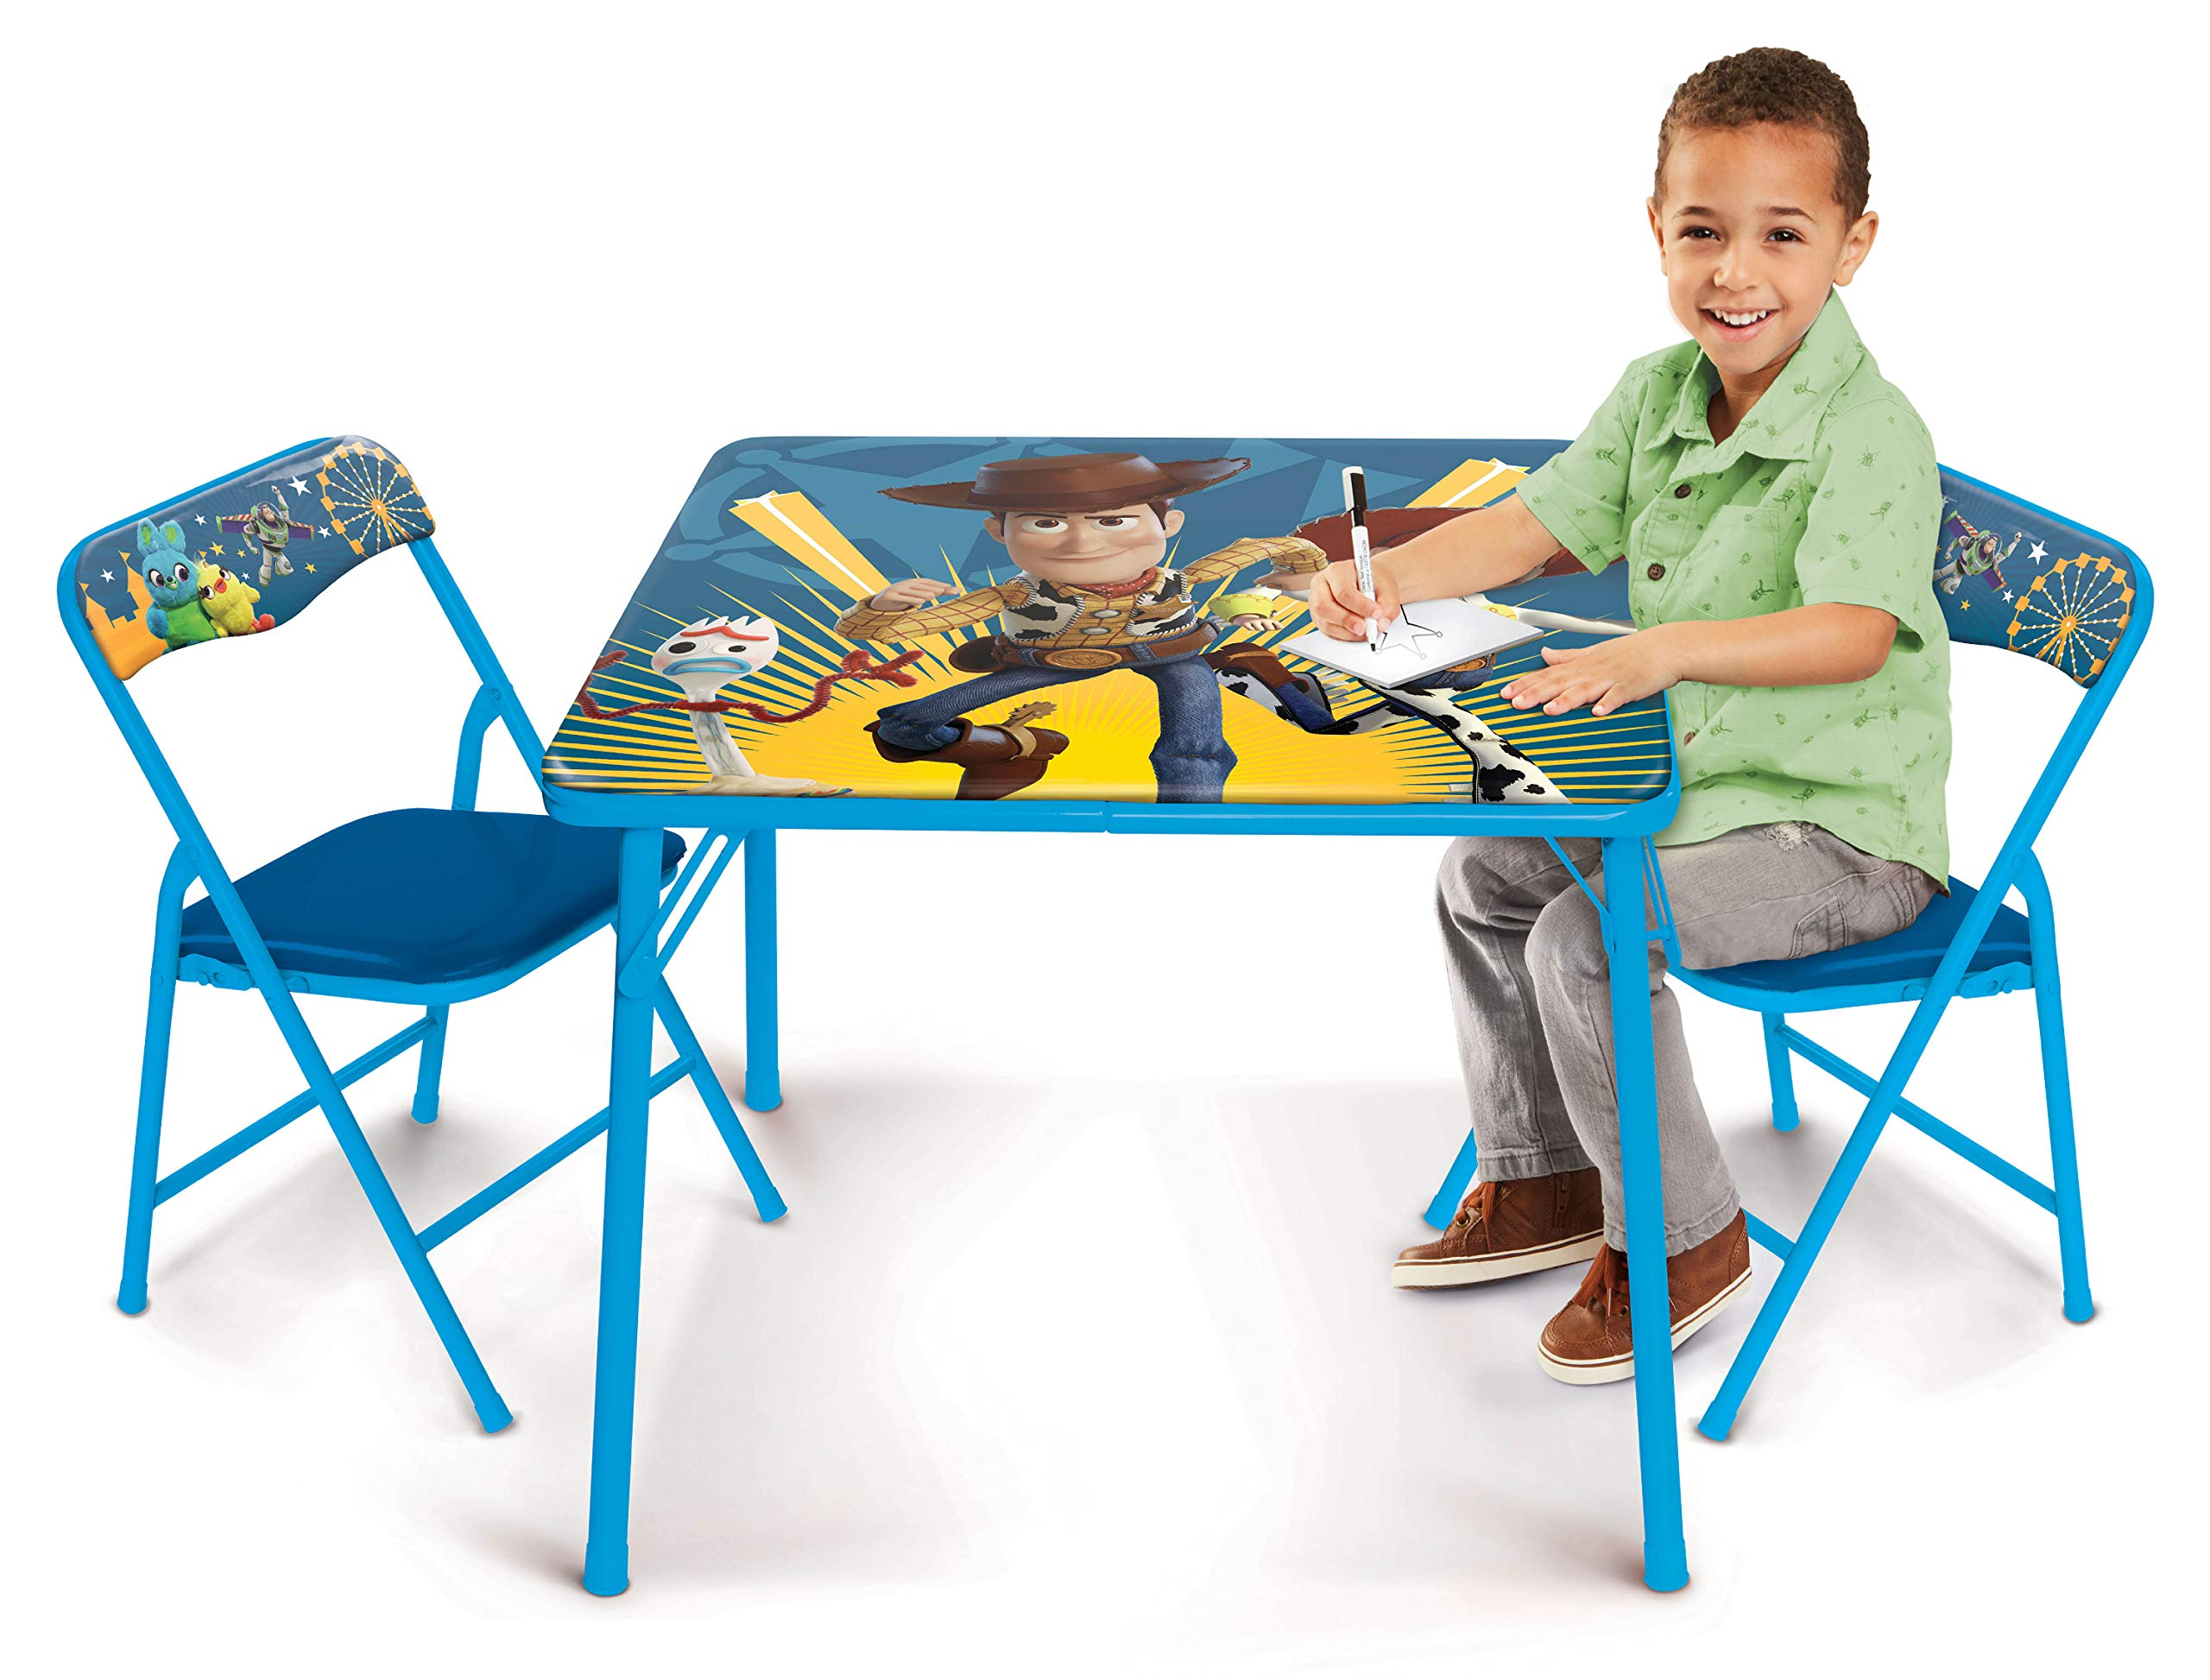 Jakks Pacific Toy Story Activity Table Set with Two Chairs by Jakks Pacific